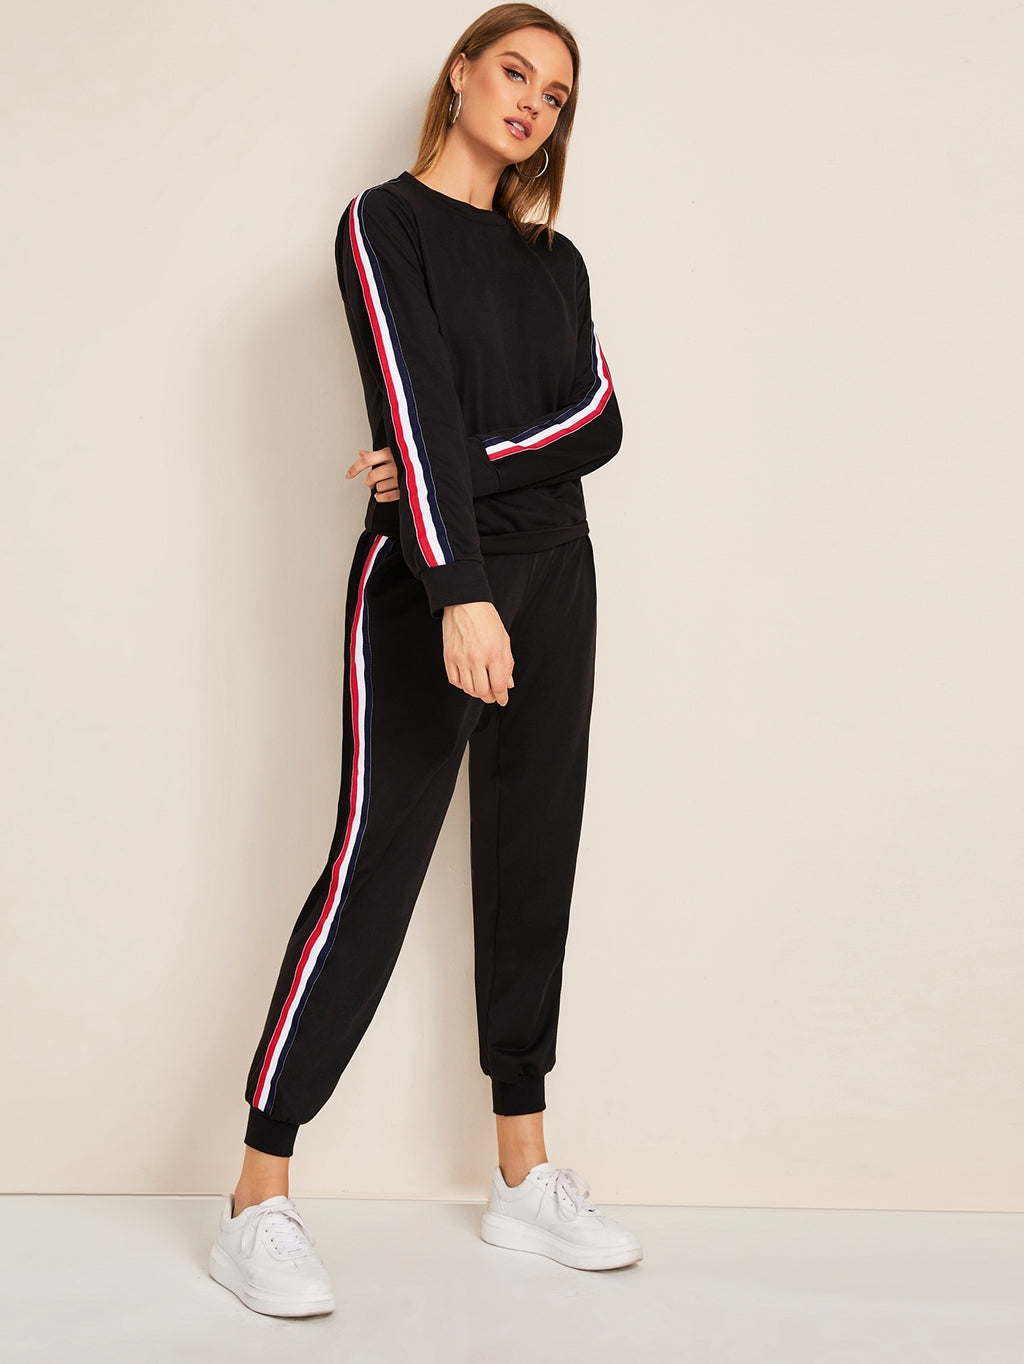 Striped Tape Side Sweatshirt With Joggers-Co-ord-blazer, co-ords, joggers, jogging bottoms, blazers-Black-S-Trendy-JayBoutique